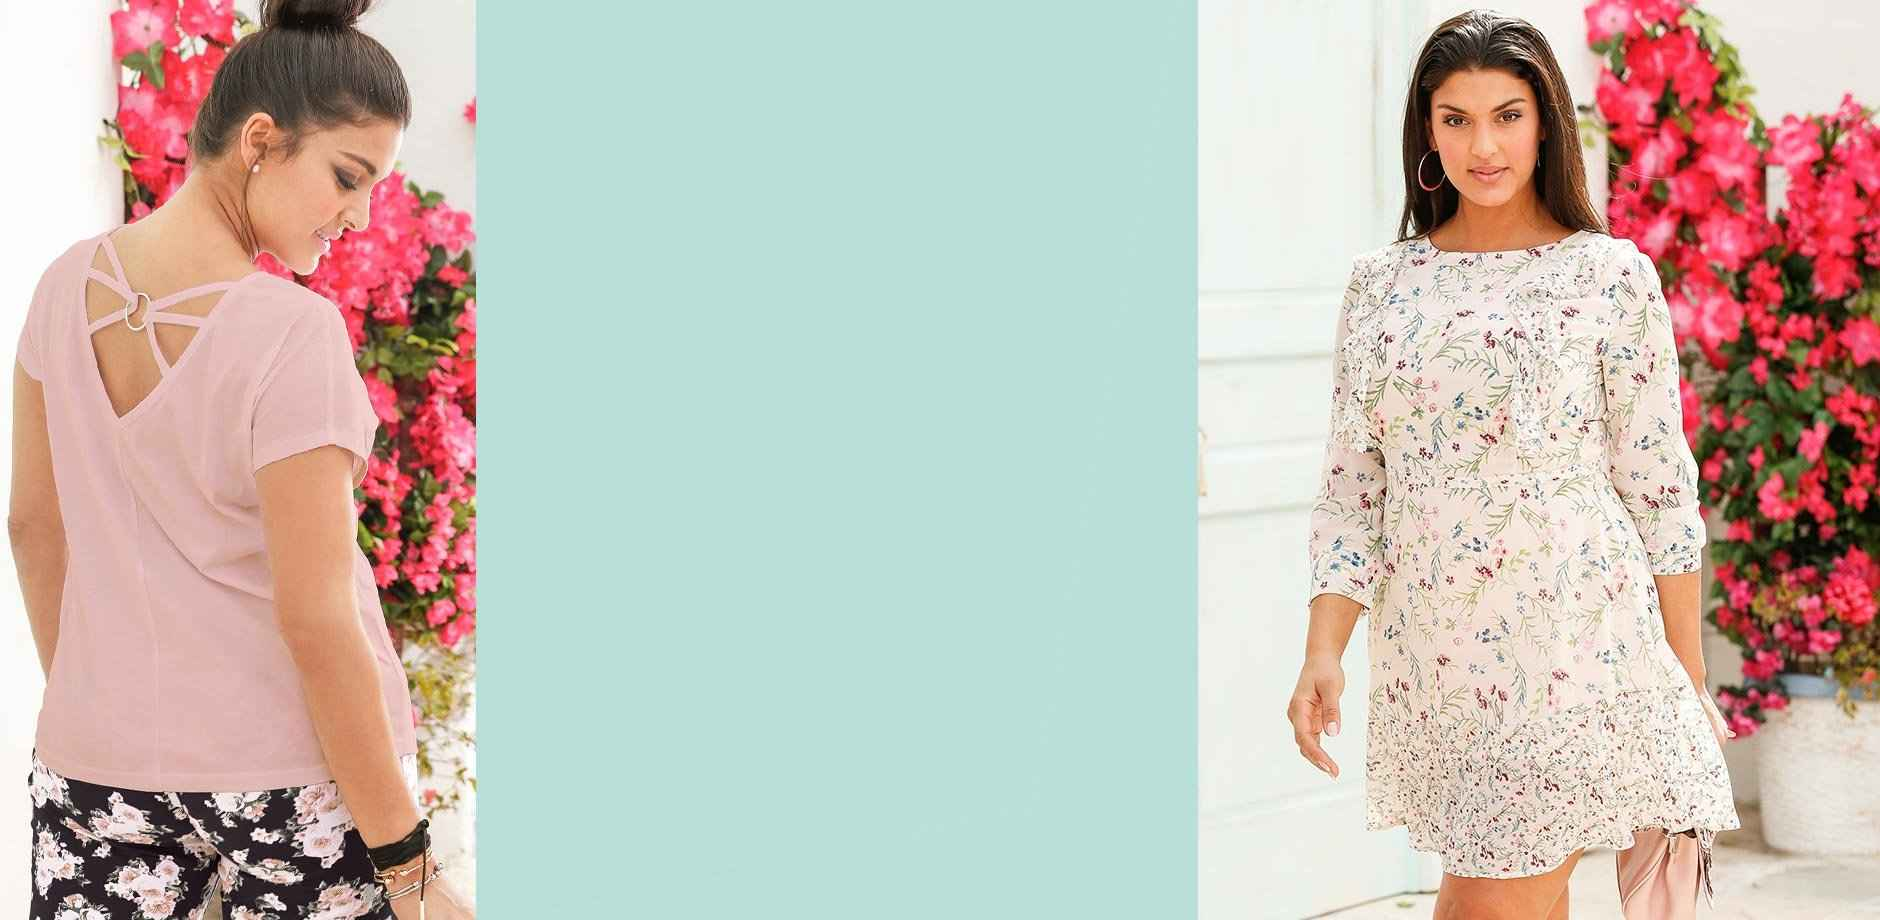 Femme - Tendances & occasions - Tendances - Pastel Dreams